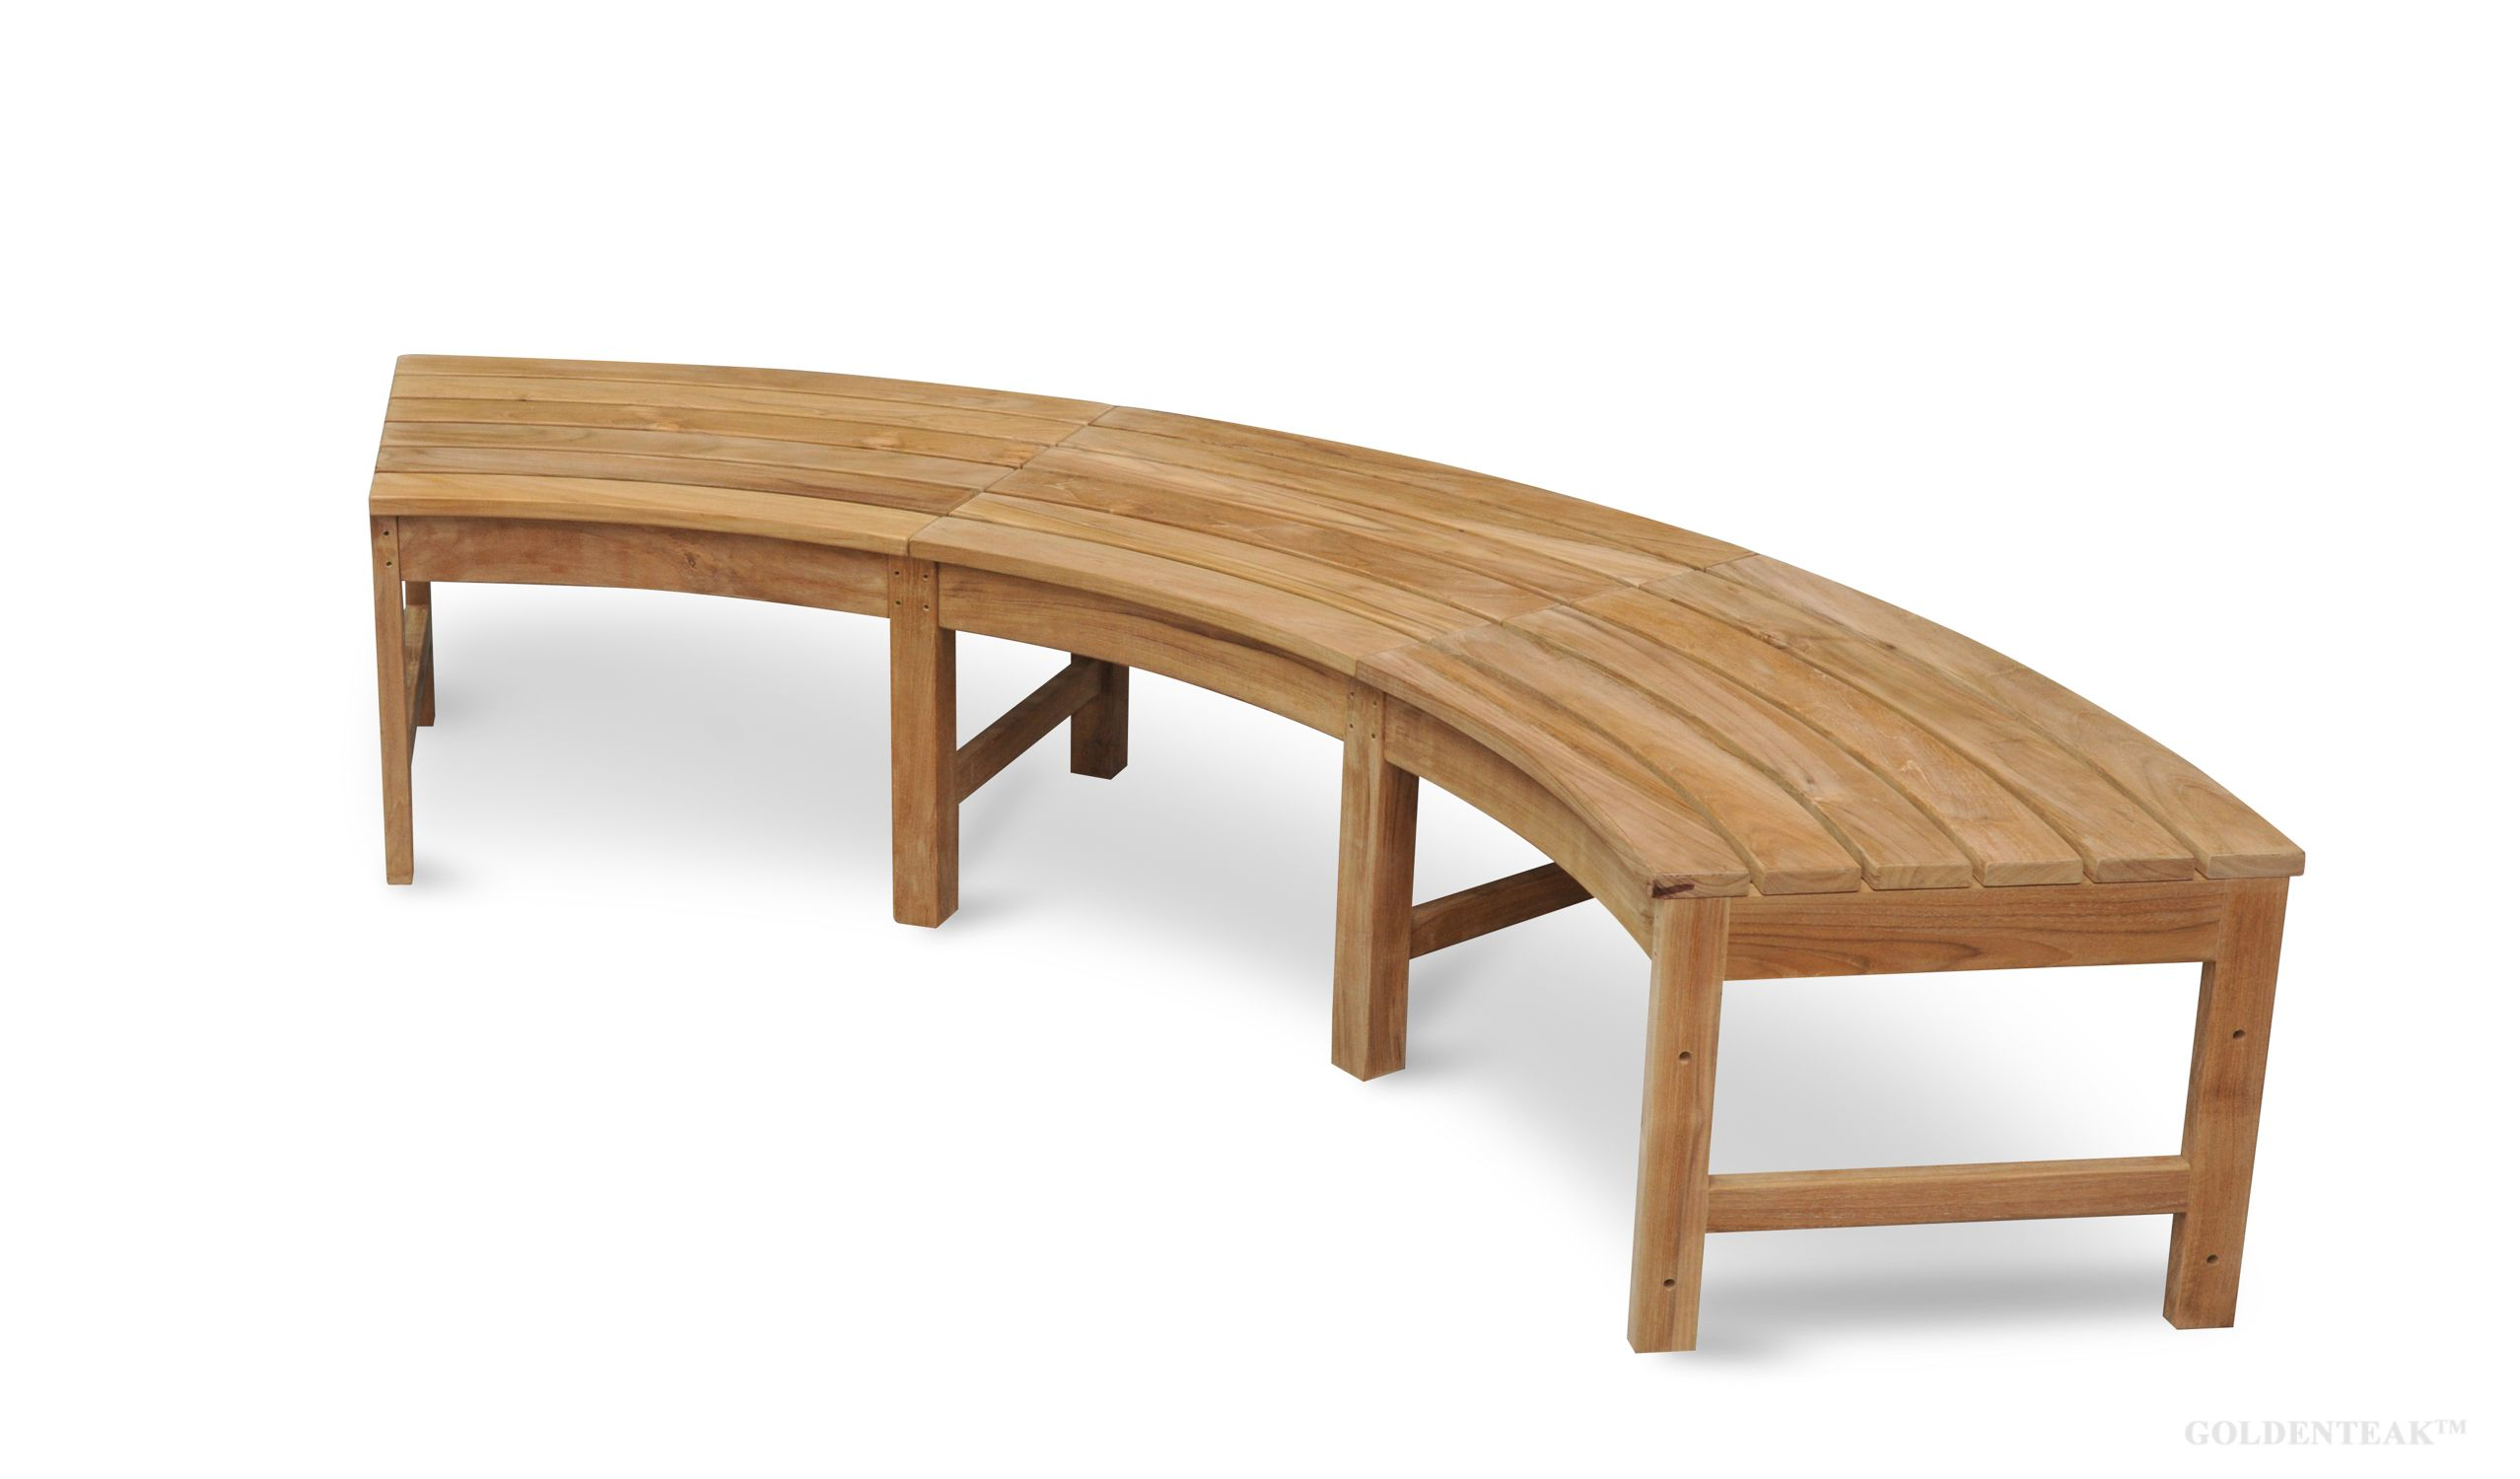 Terrific Westminster Teak Circular Curved Backless Bench 83 In W In Lamtechconsult Wood Chair Design Ideas Lamtechconsultcom